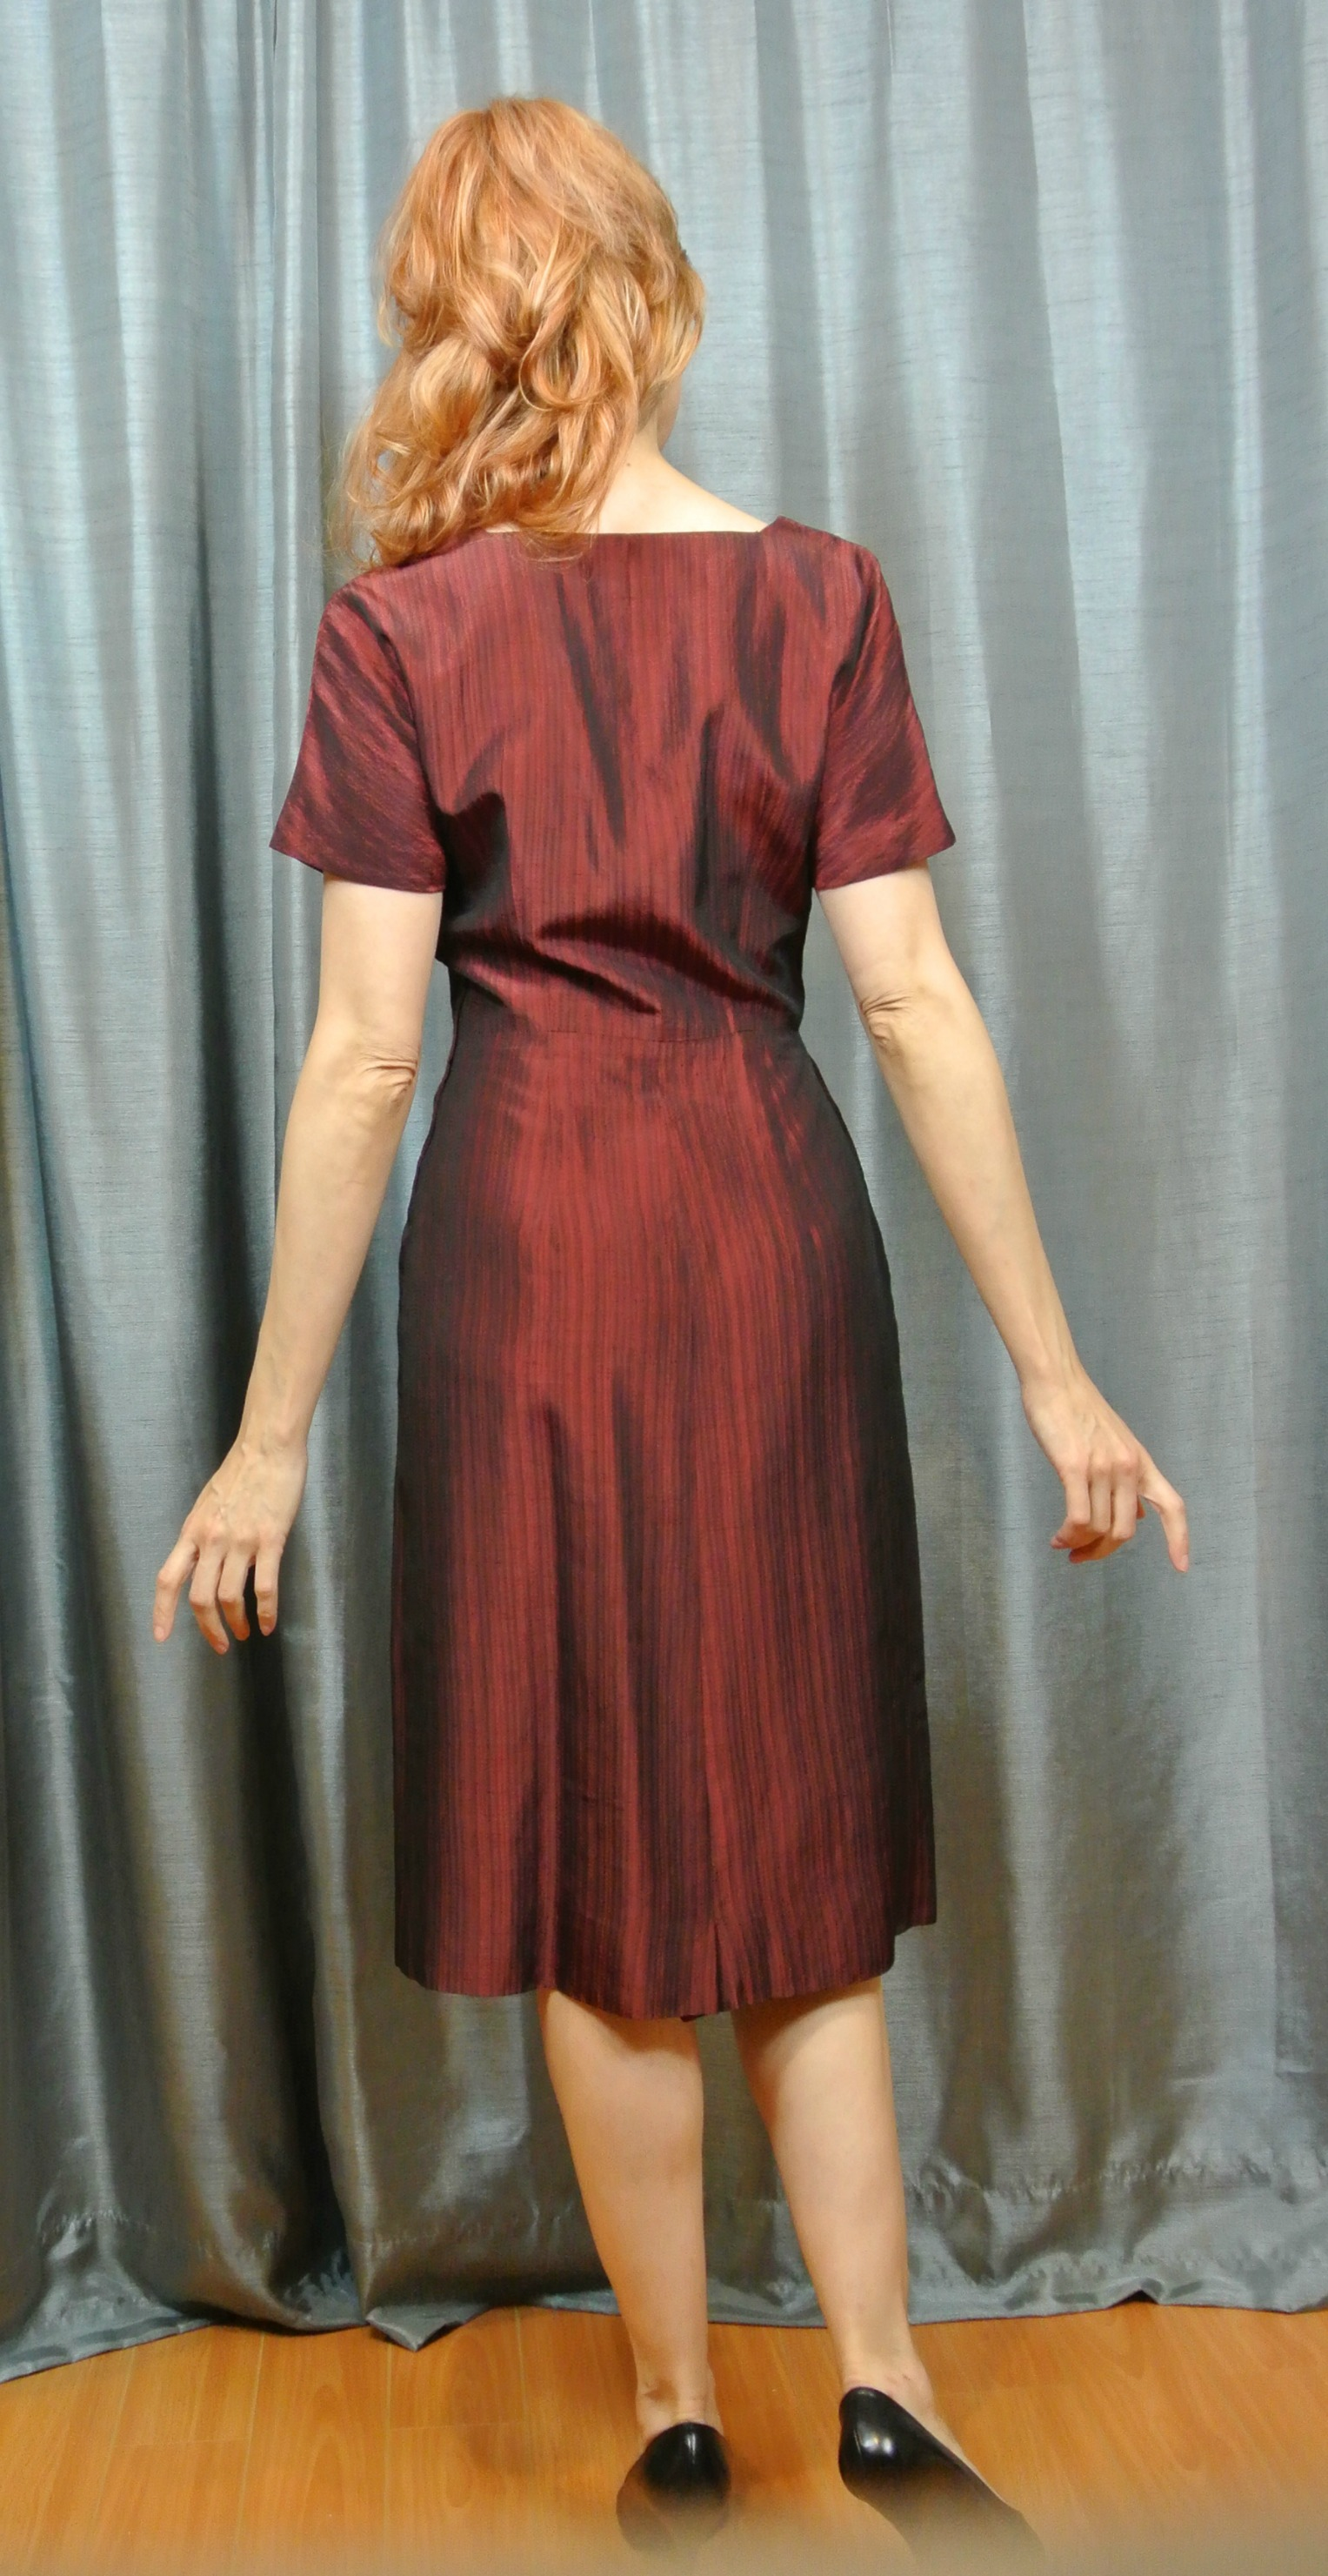 Stiletto City Store -Red Vintage Dress Back View